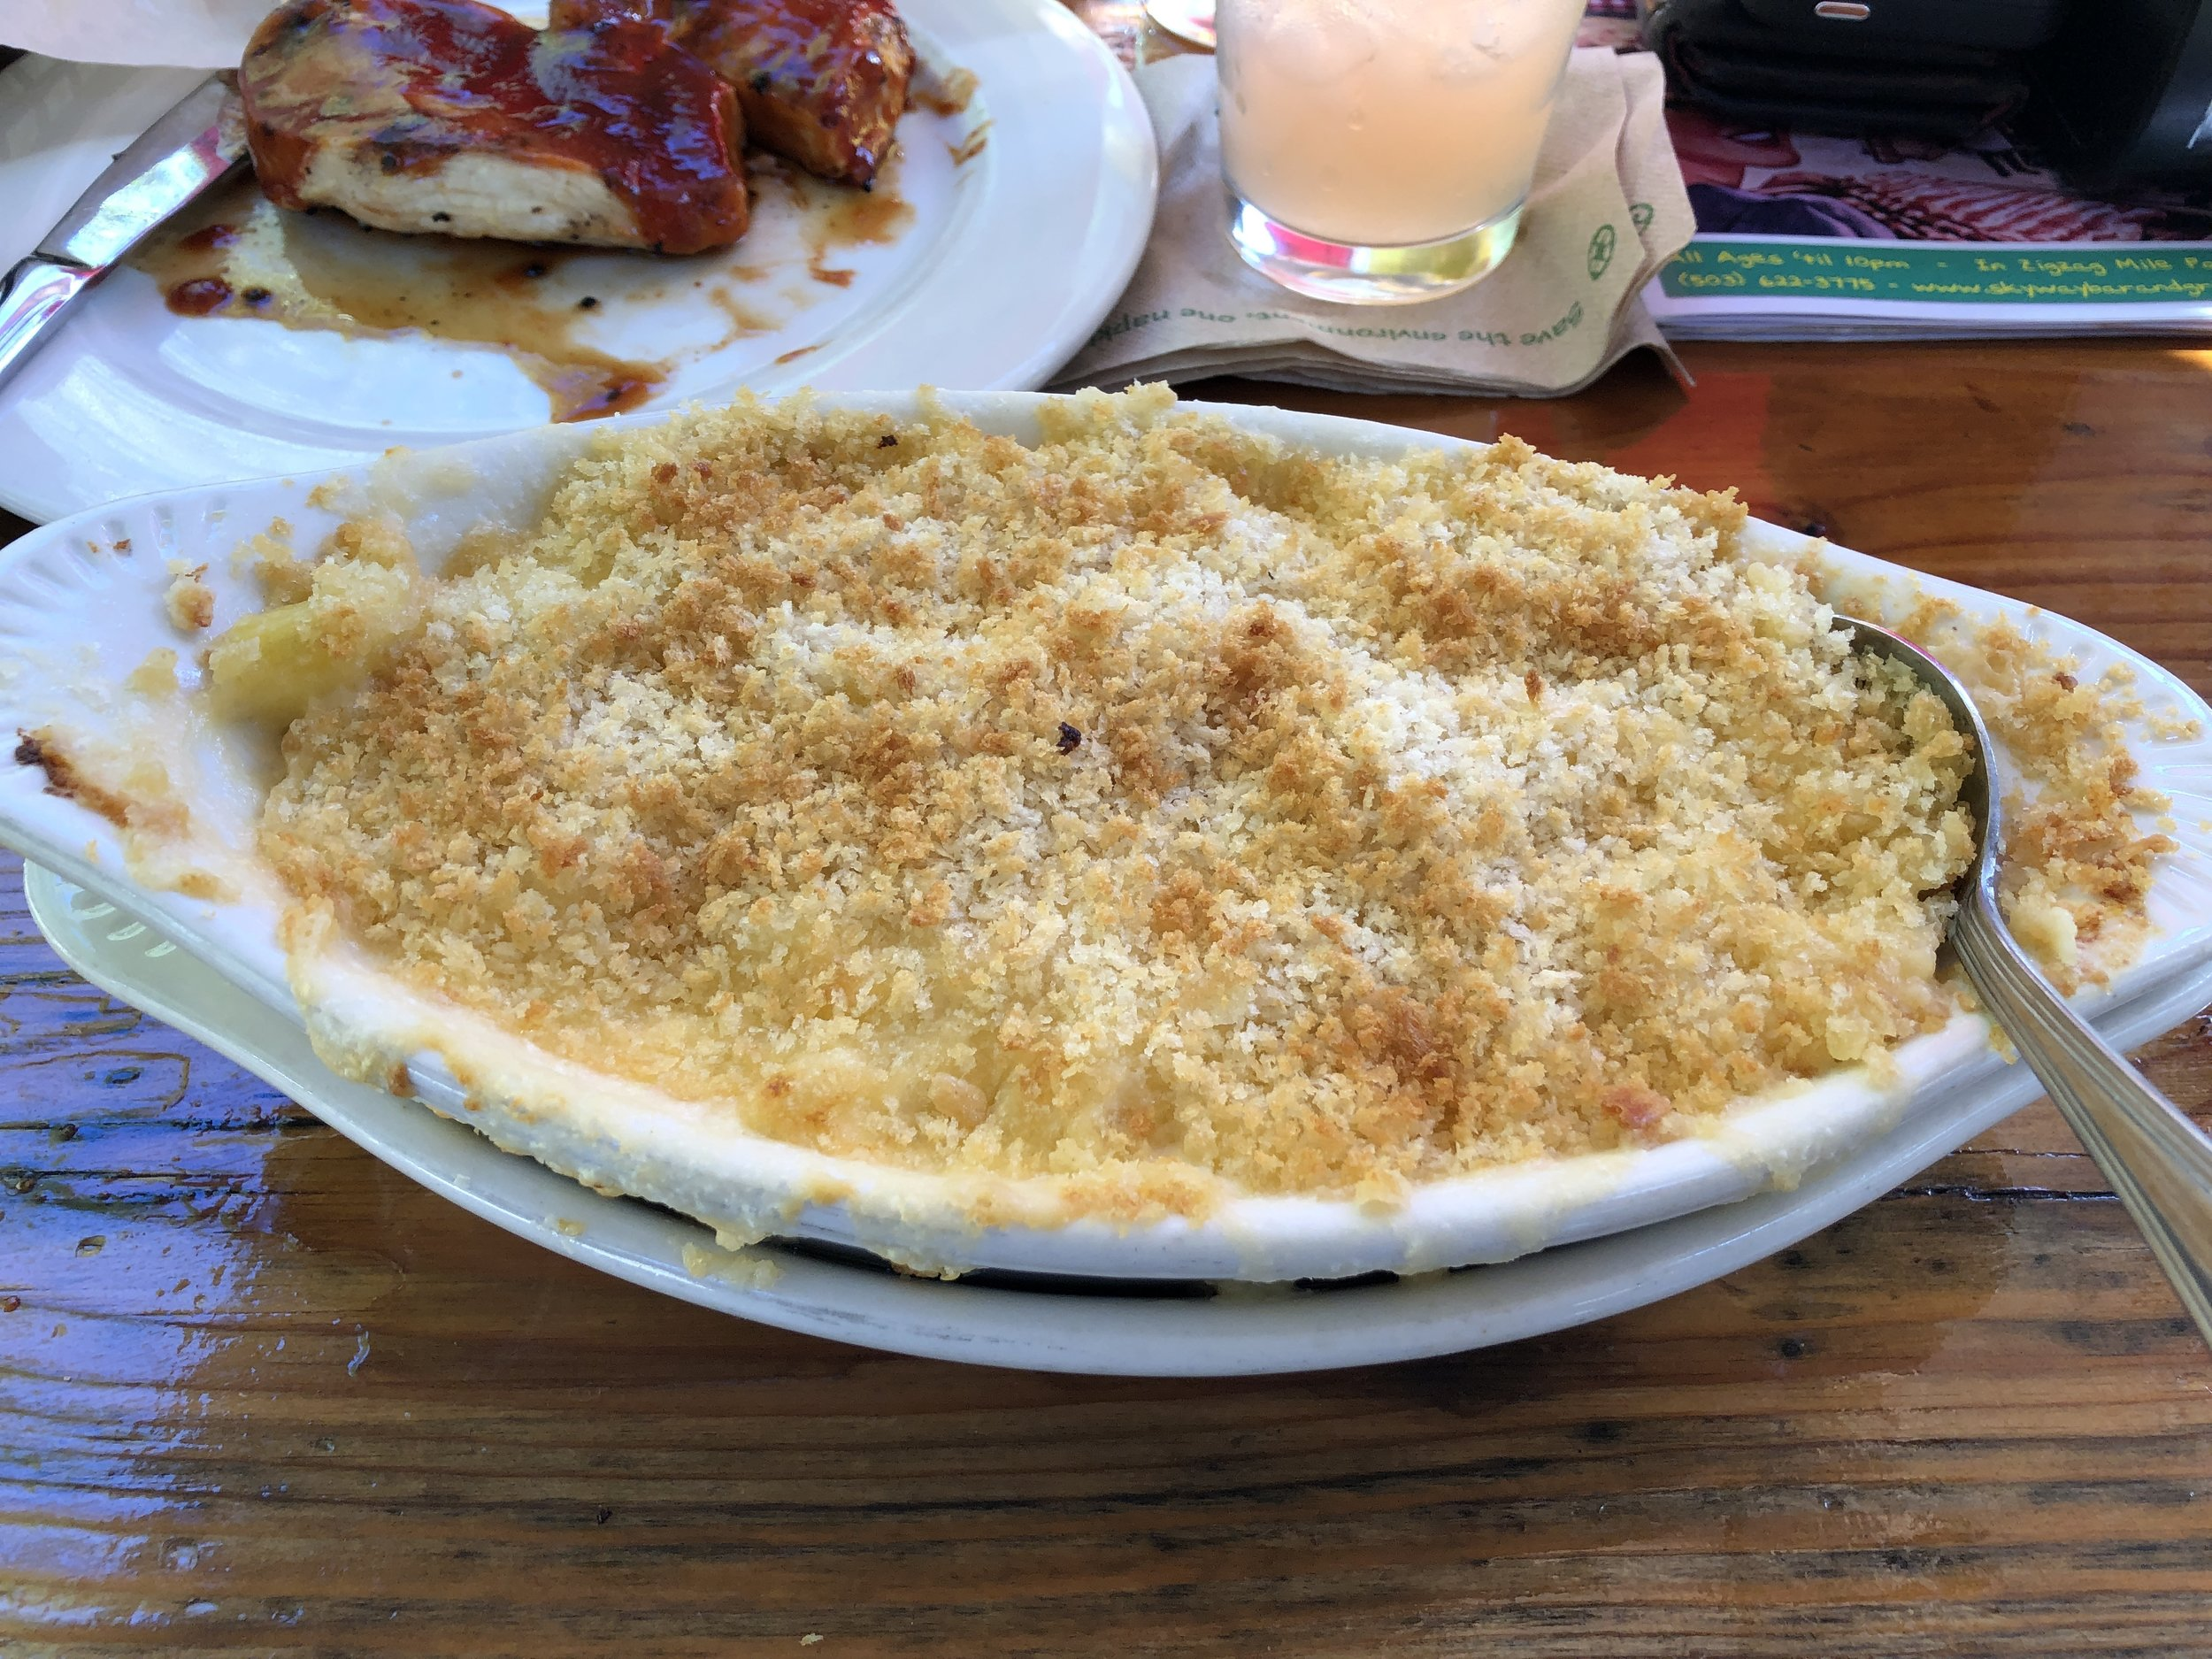 Aside from the staff and ambiance, this particular mac n' cheese is what keeps my mom headed back up to the Skyway. Can't wait to try! Image Courtesy: Becky Jahns